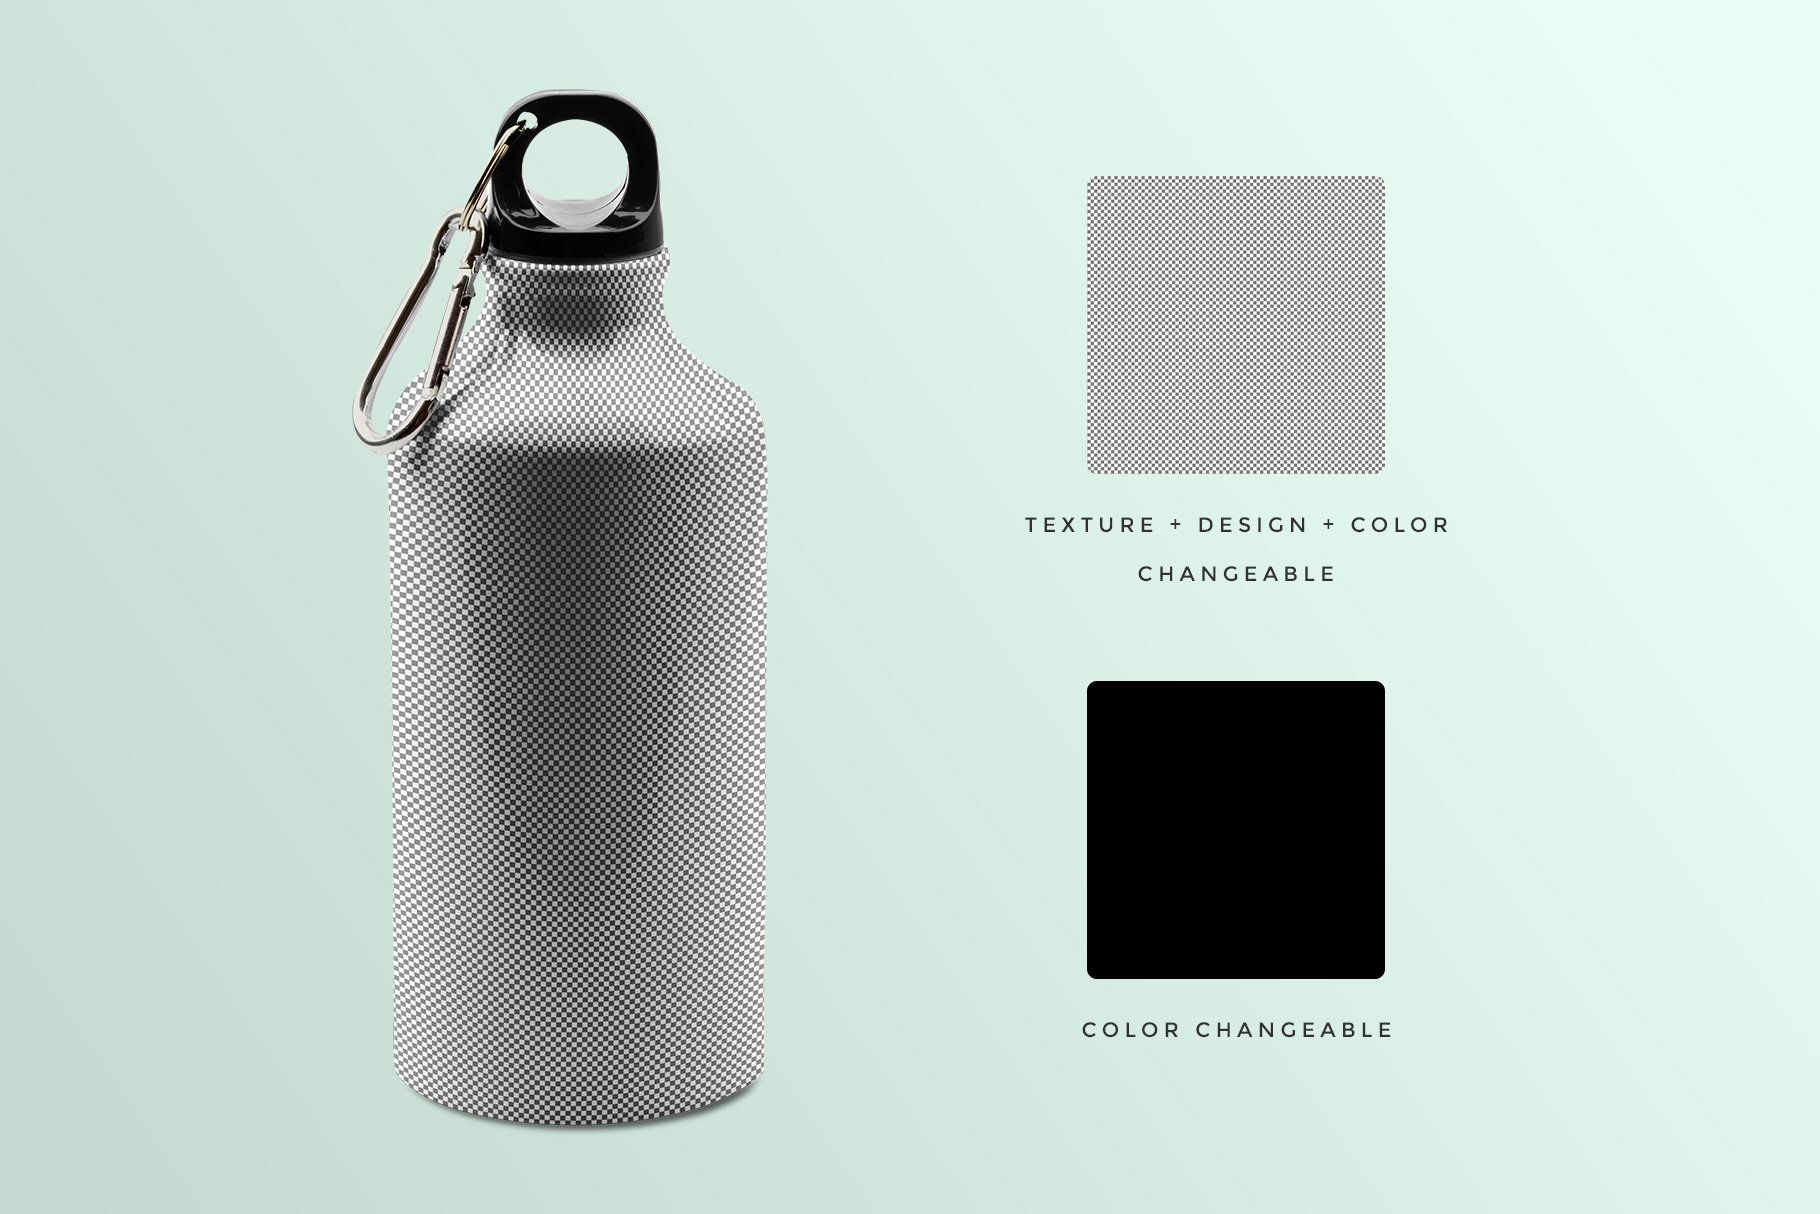 editability of the stainless sports water bottle mockup